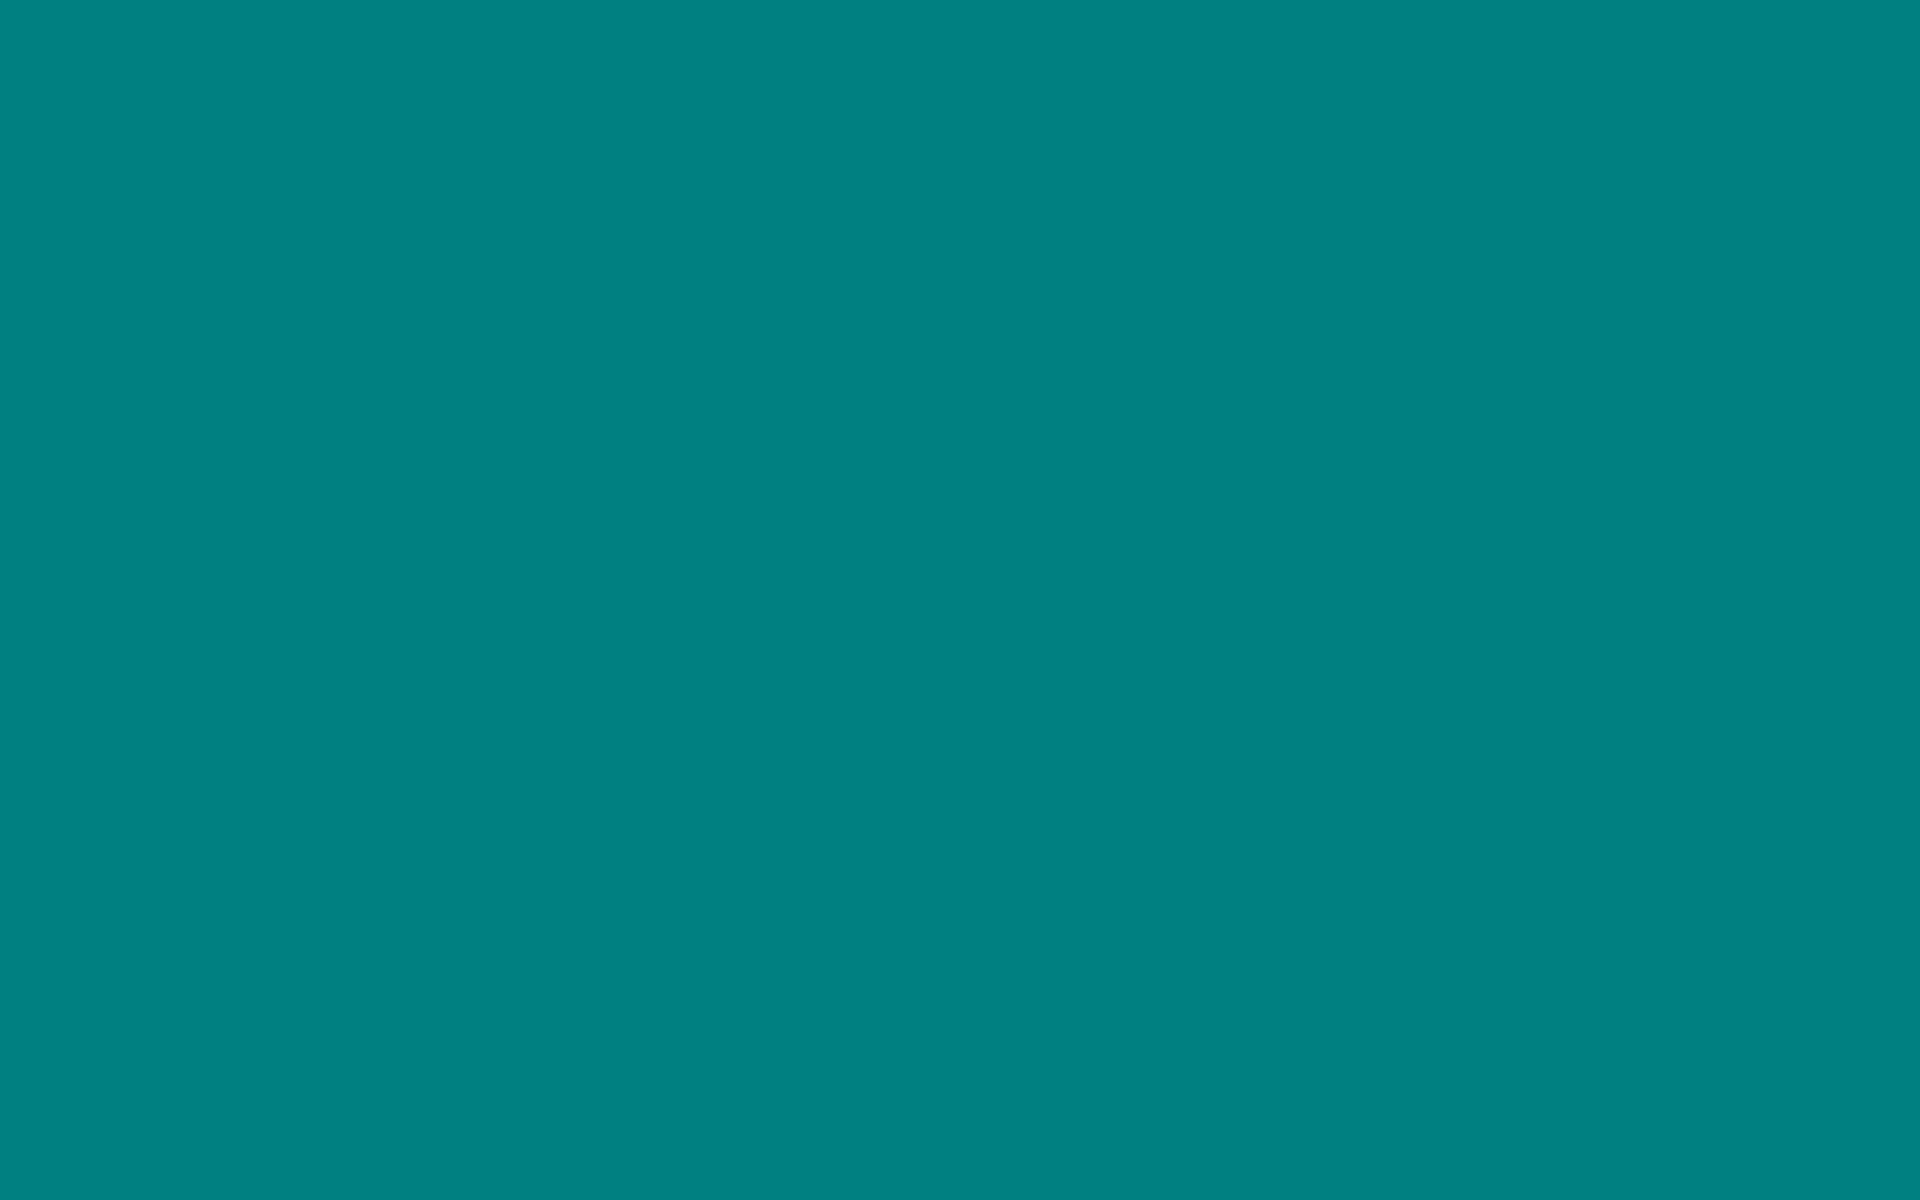 1920x1200 Download the following Teal Solid Color Wallpaper 2111 by clicking the  button positioned underneath the ""